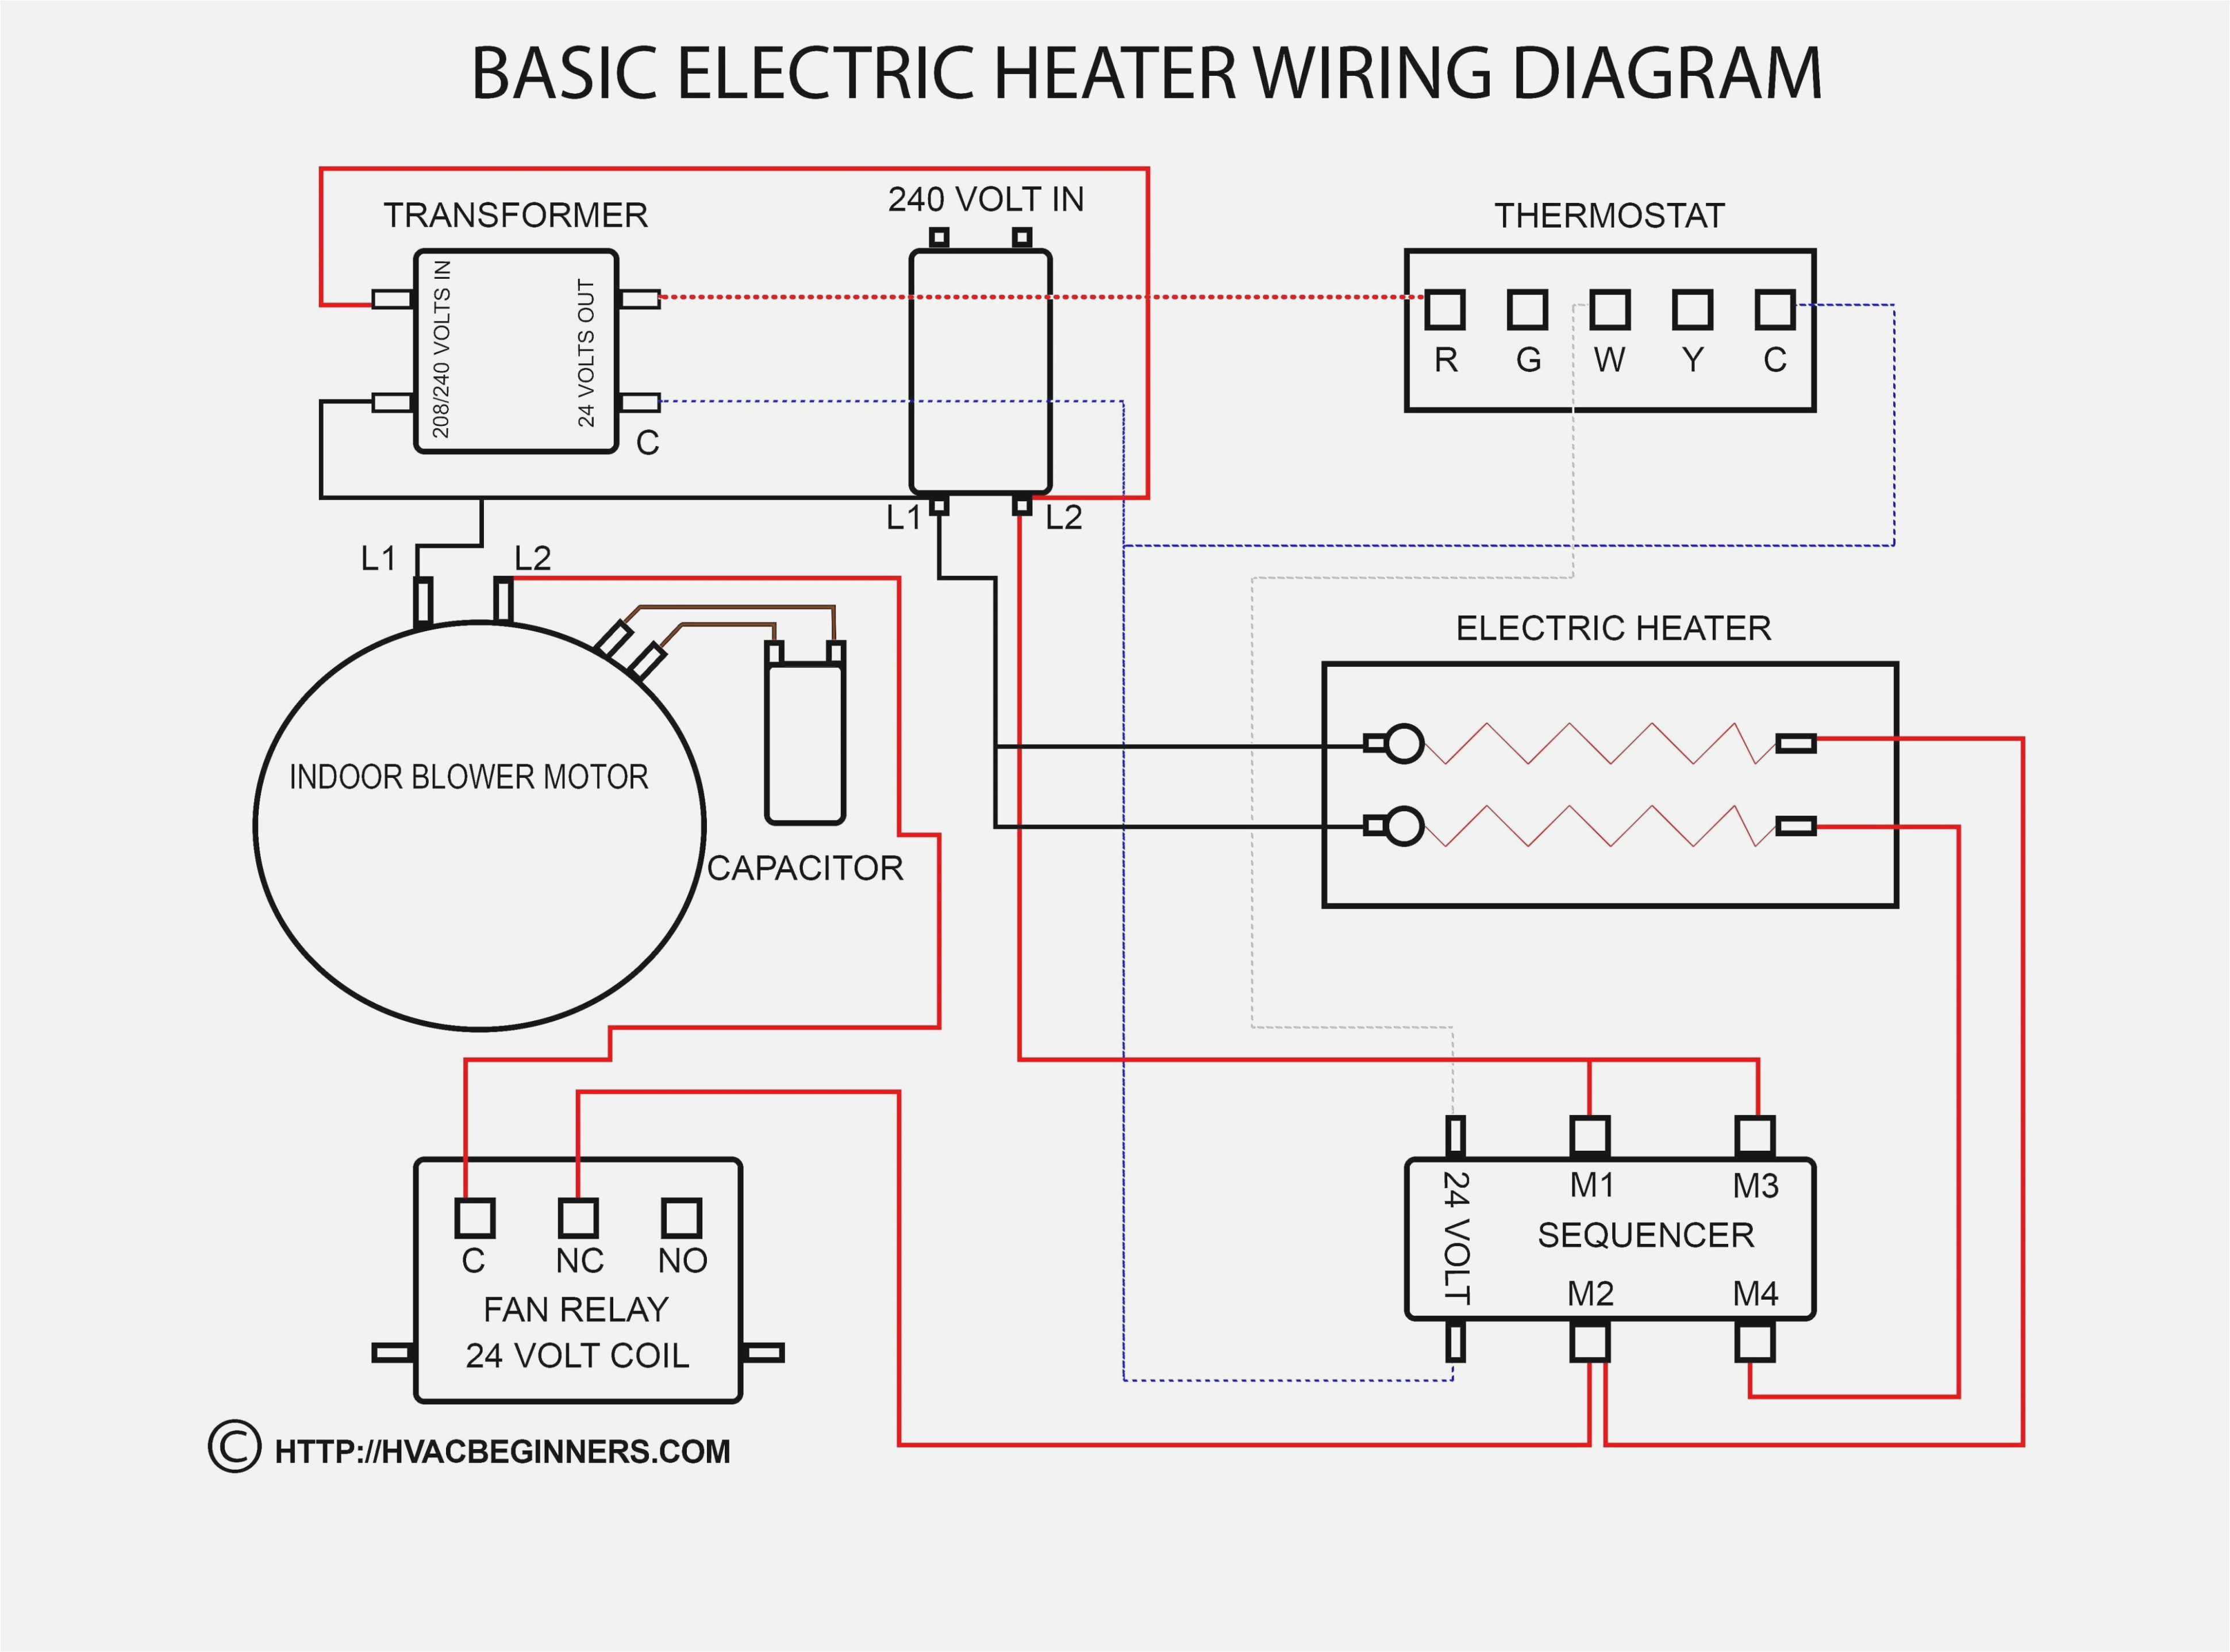 wiring diagram cmos inverter circuitdf 12v to download video forc adapterower supplyortable air conditioning unit png